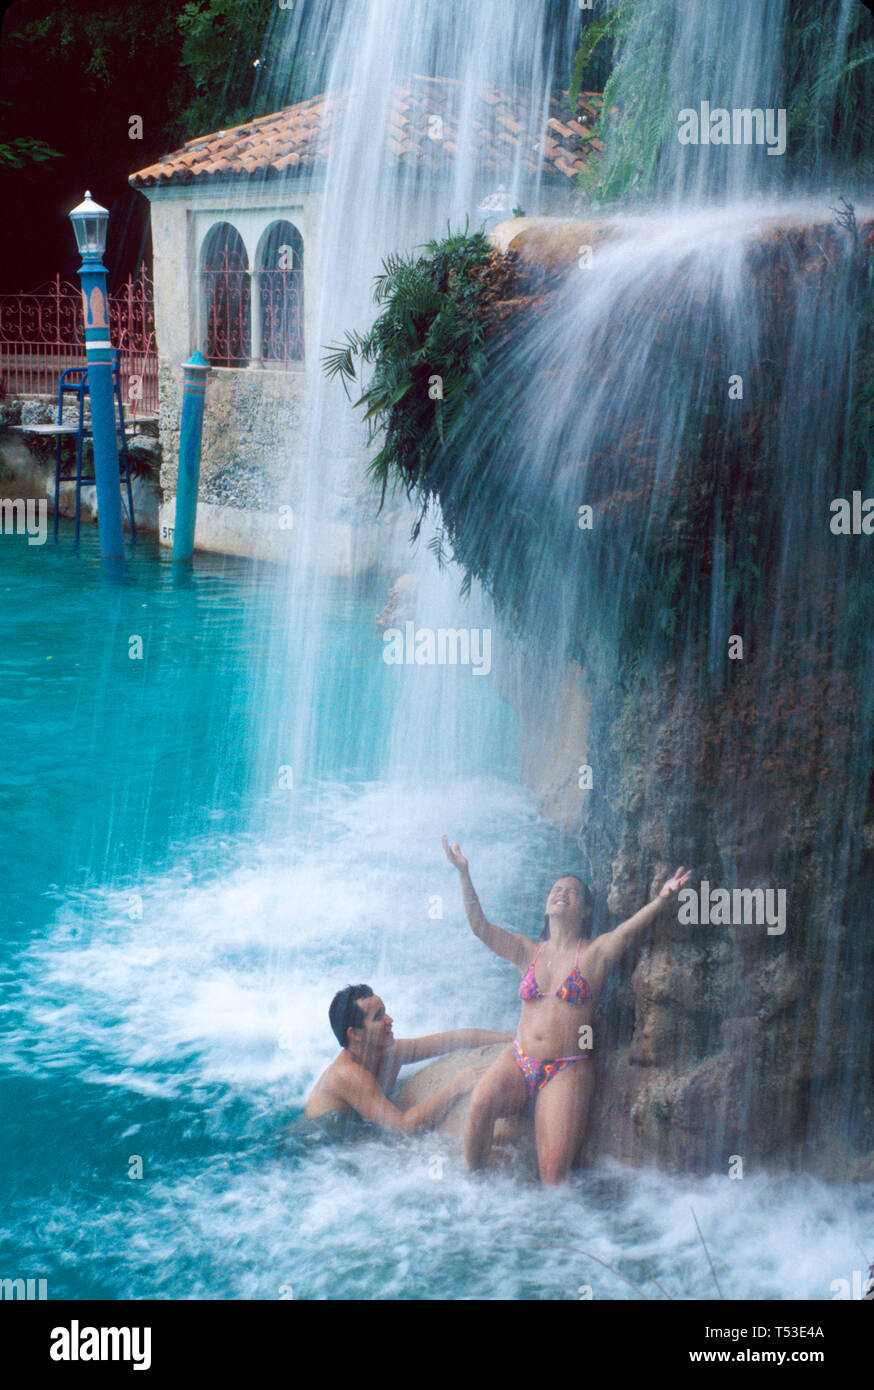 Coral Gables Miami Florida Venetian Pool former quarry visitors under waterfall - Stock Image